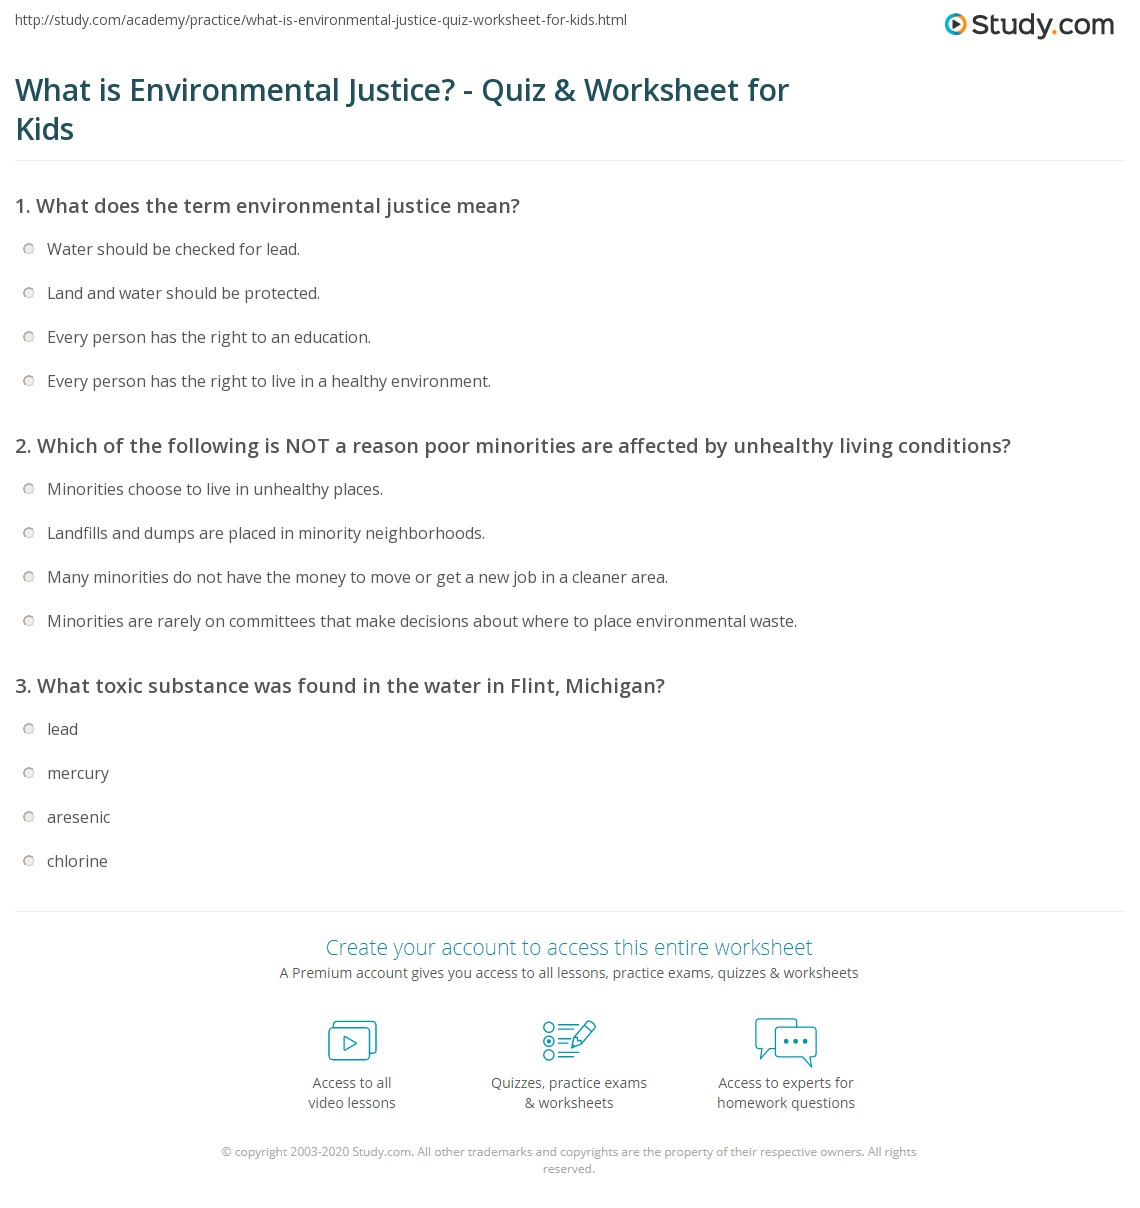 What Is Environmental Justice